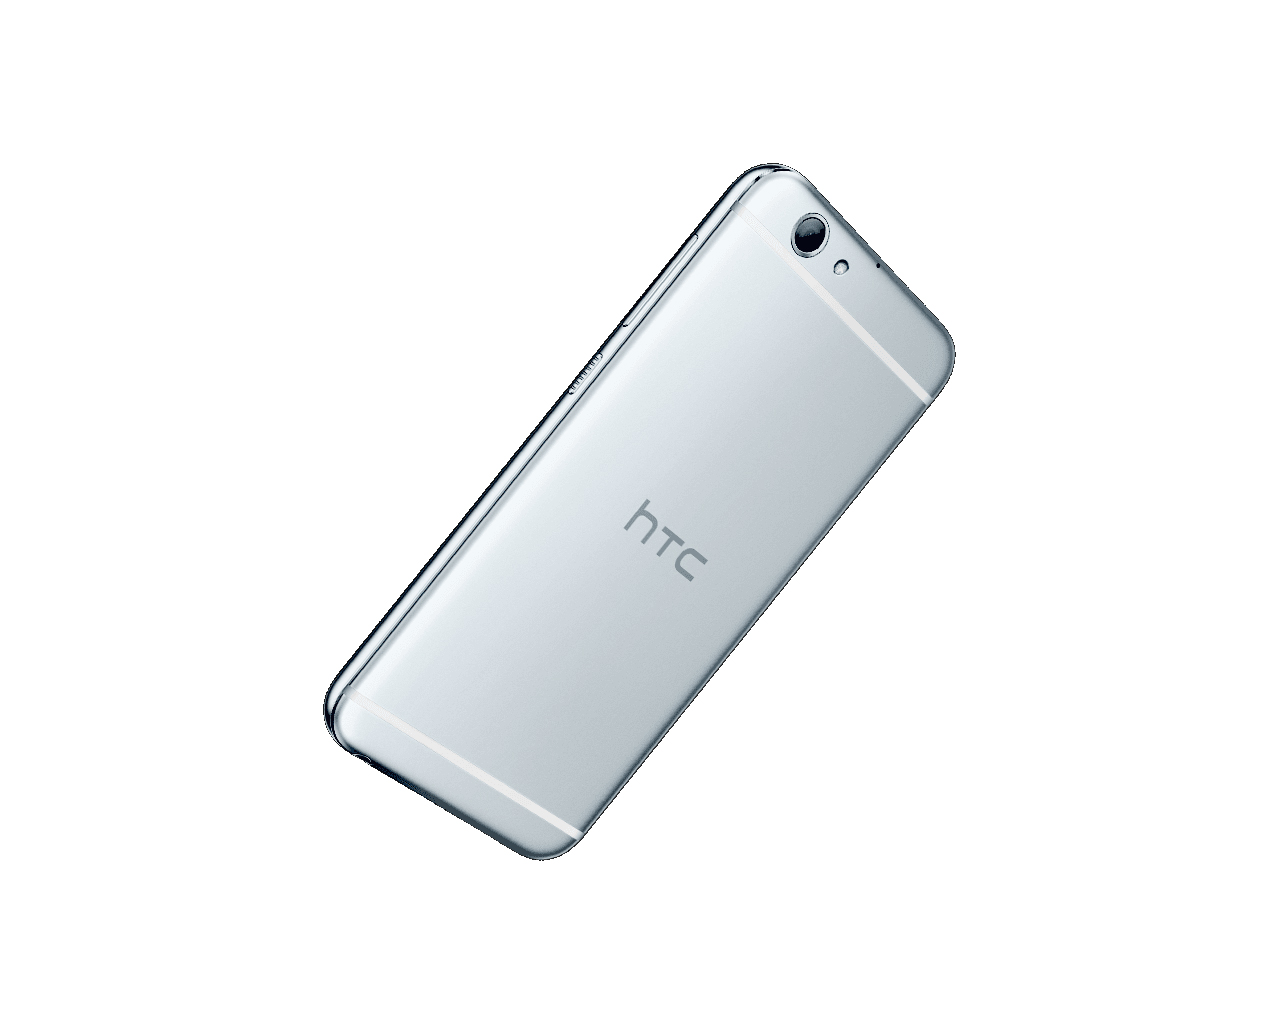 HTC USB Modem Drivers Update